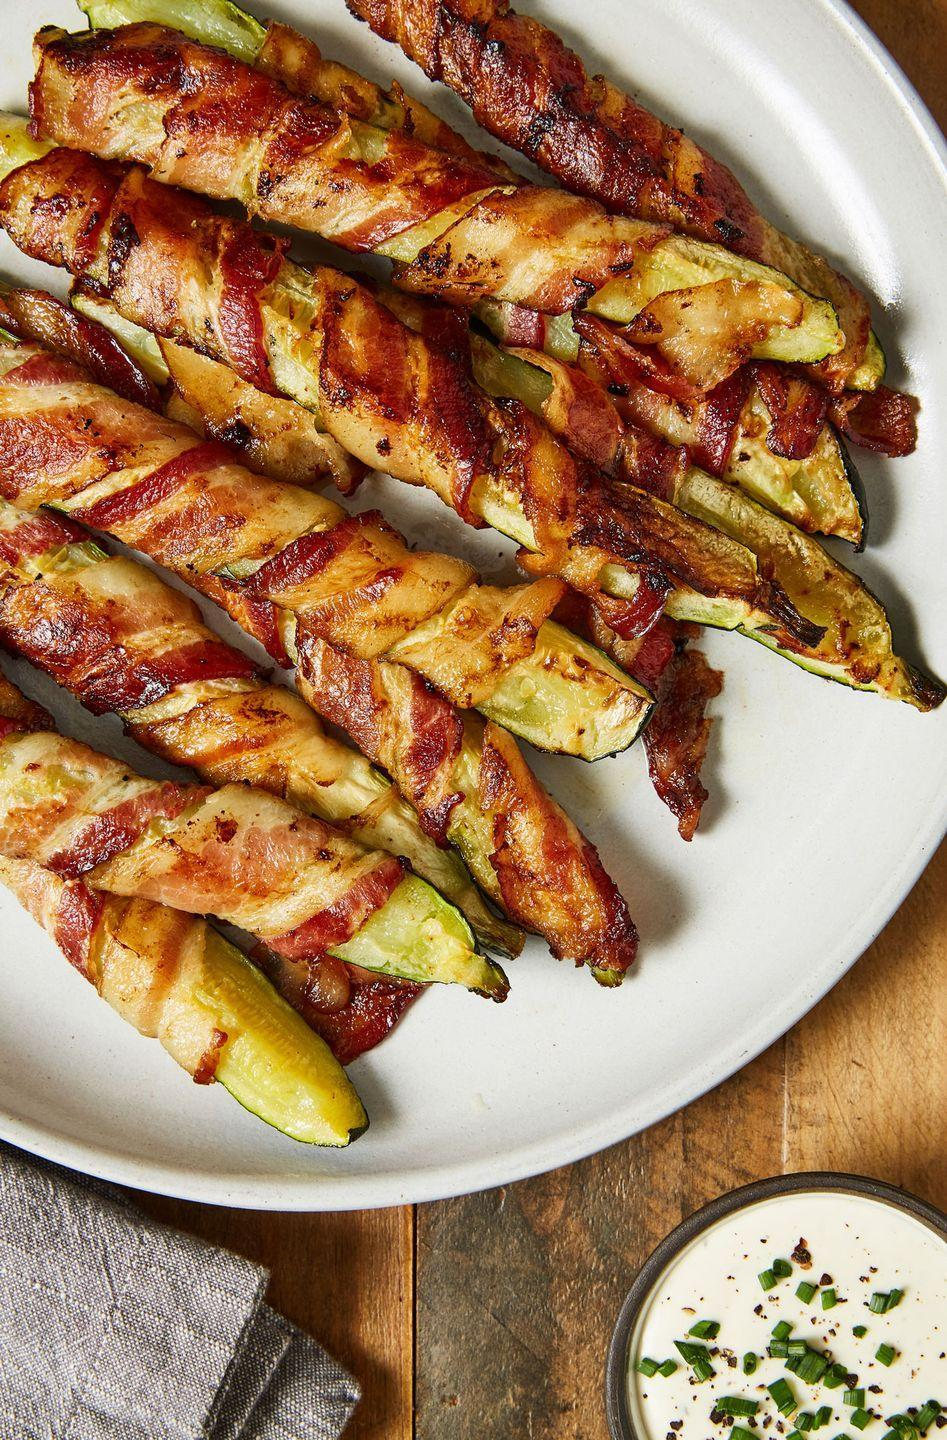 """<p>Bacon-wrapped anything, please!</p><p>Get the recipe from <a href=""""https://www.delish.com/cooking/recipe-ideas/a22575410/bacon-zucchini-fries-recipe/"""" rel=""""nofollow noopener"""" target=""""_blank"""" data-ylk=""""slk:Delish"""" class=""""link rapid-noclick-resp"""">Delish</a>.</p>"""